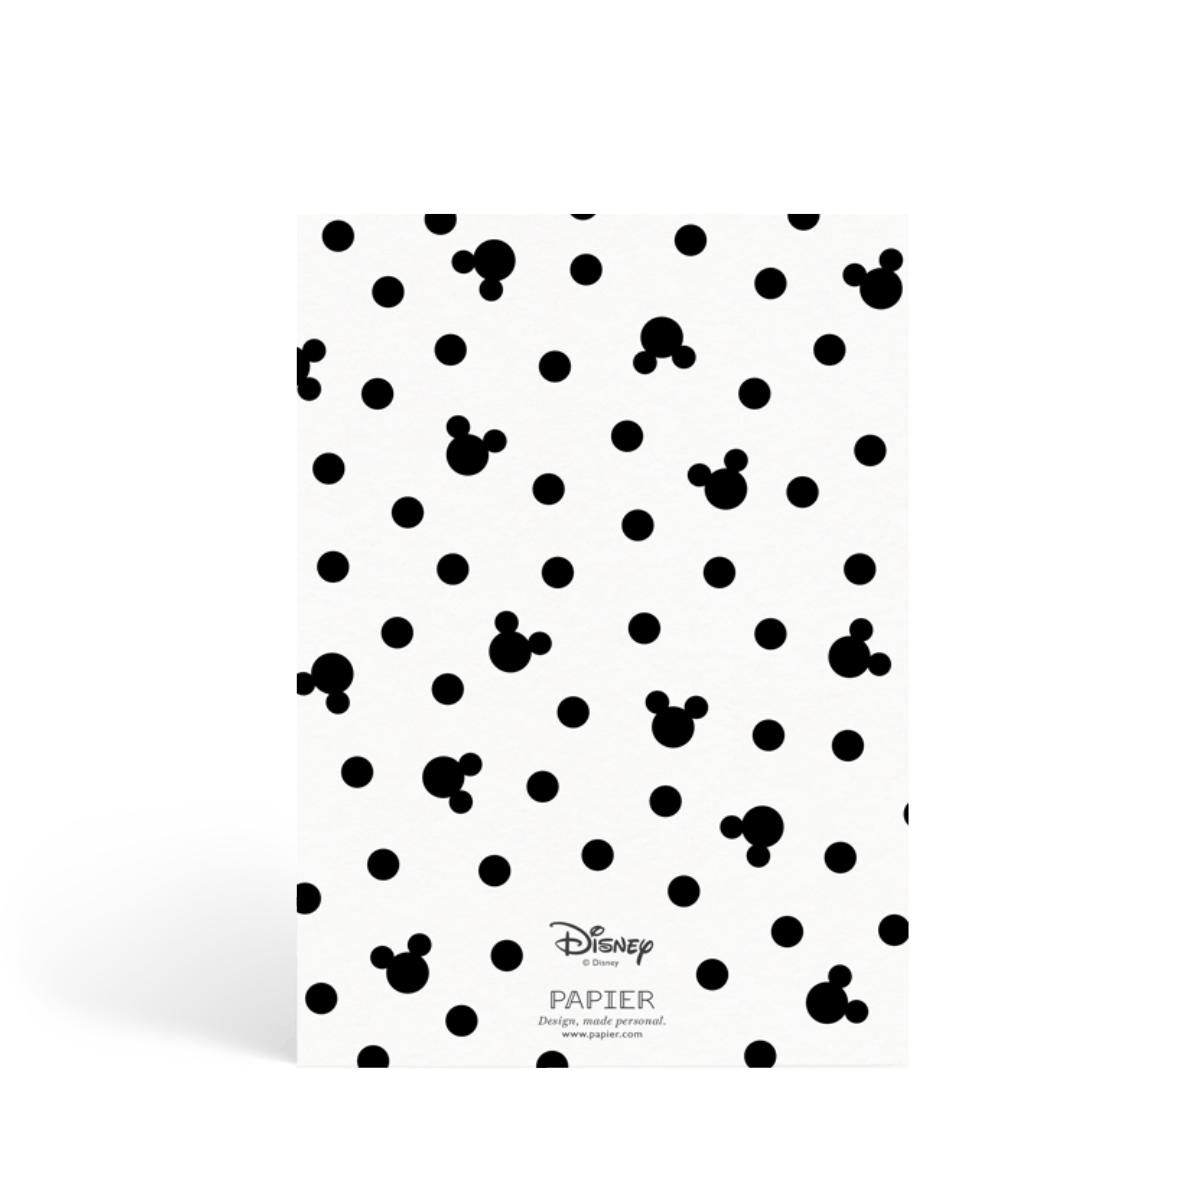 Https%3a%2f%2fwww.papier.com%2fproduct image%2f51347%2f5%2fpolka dot mickey mouse 12574 back 1540478062.png?ixlib=rb 1.1